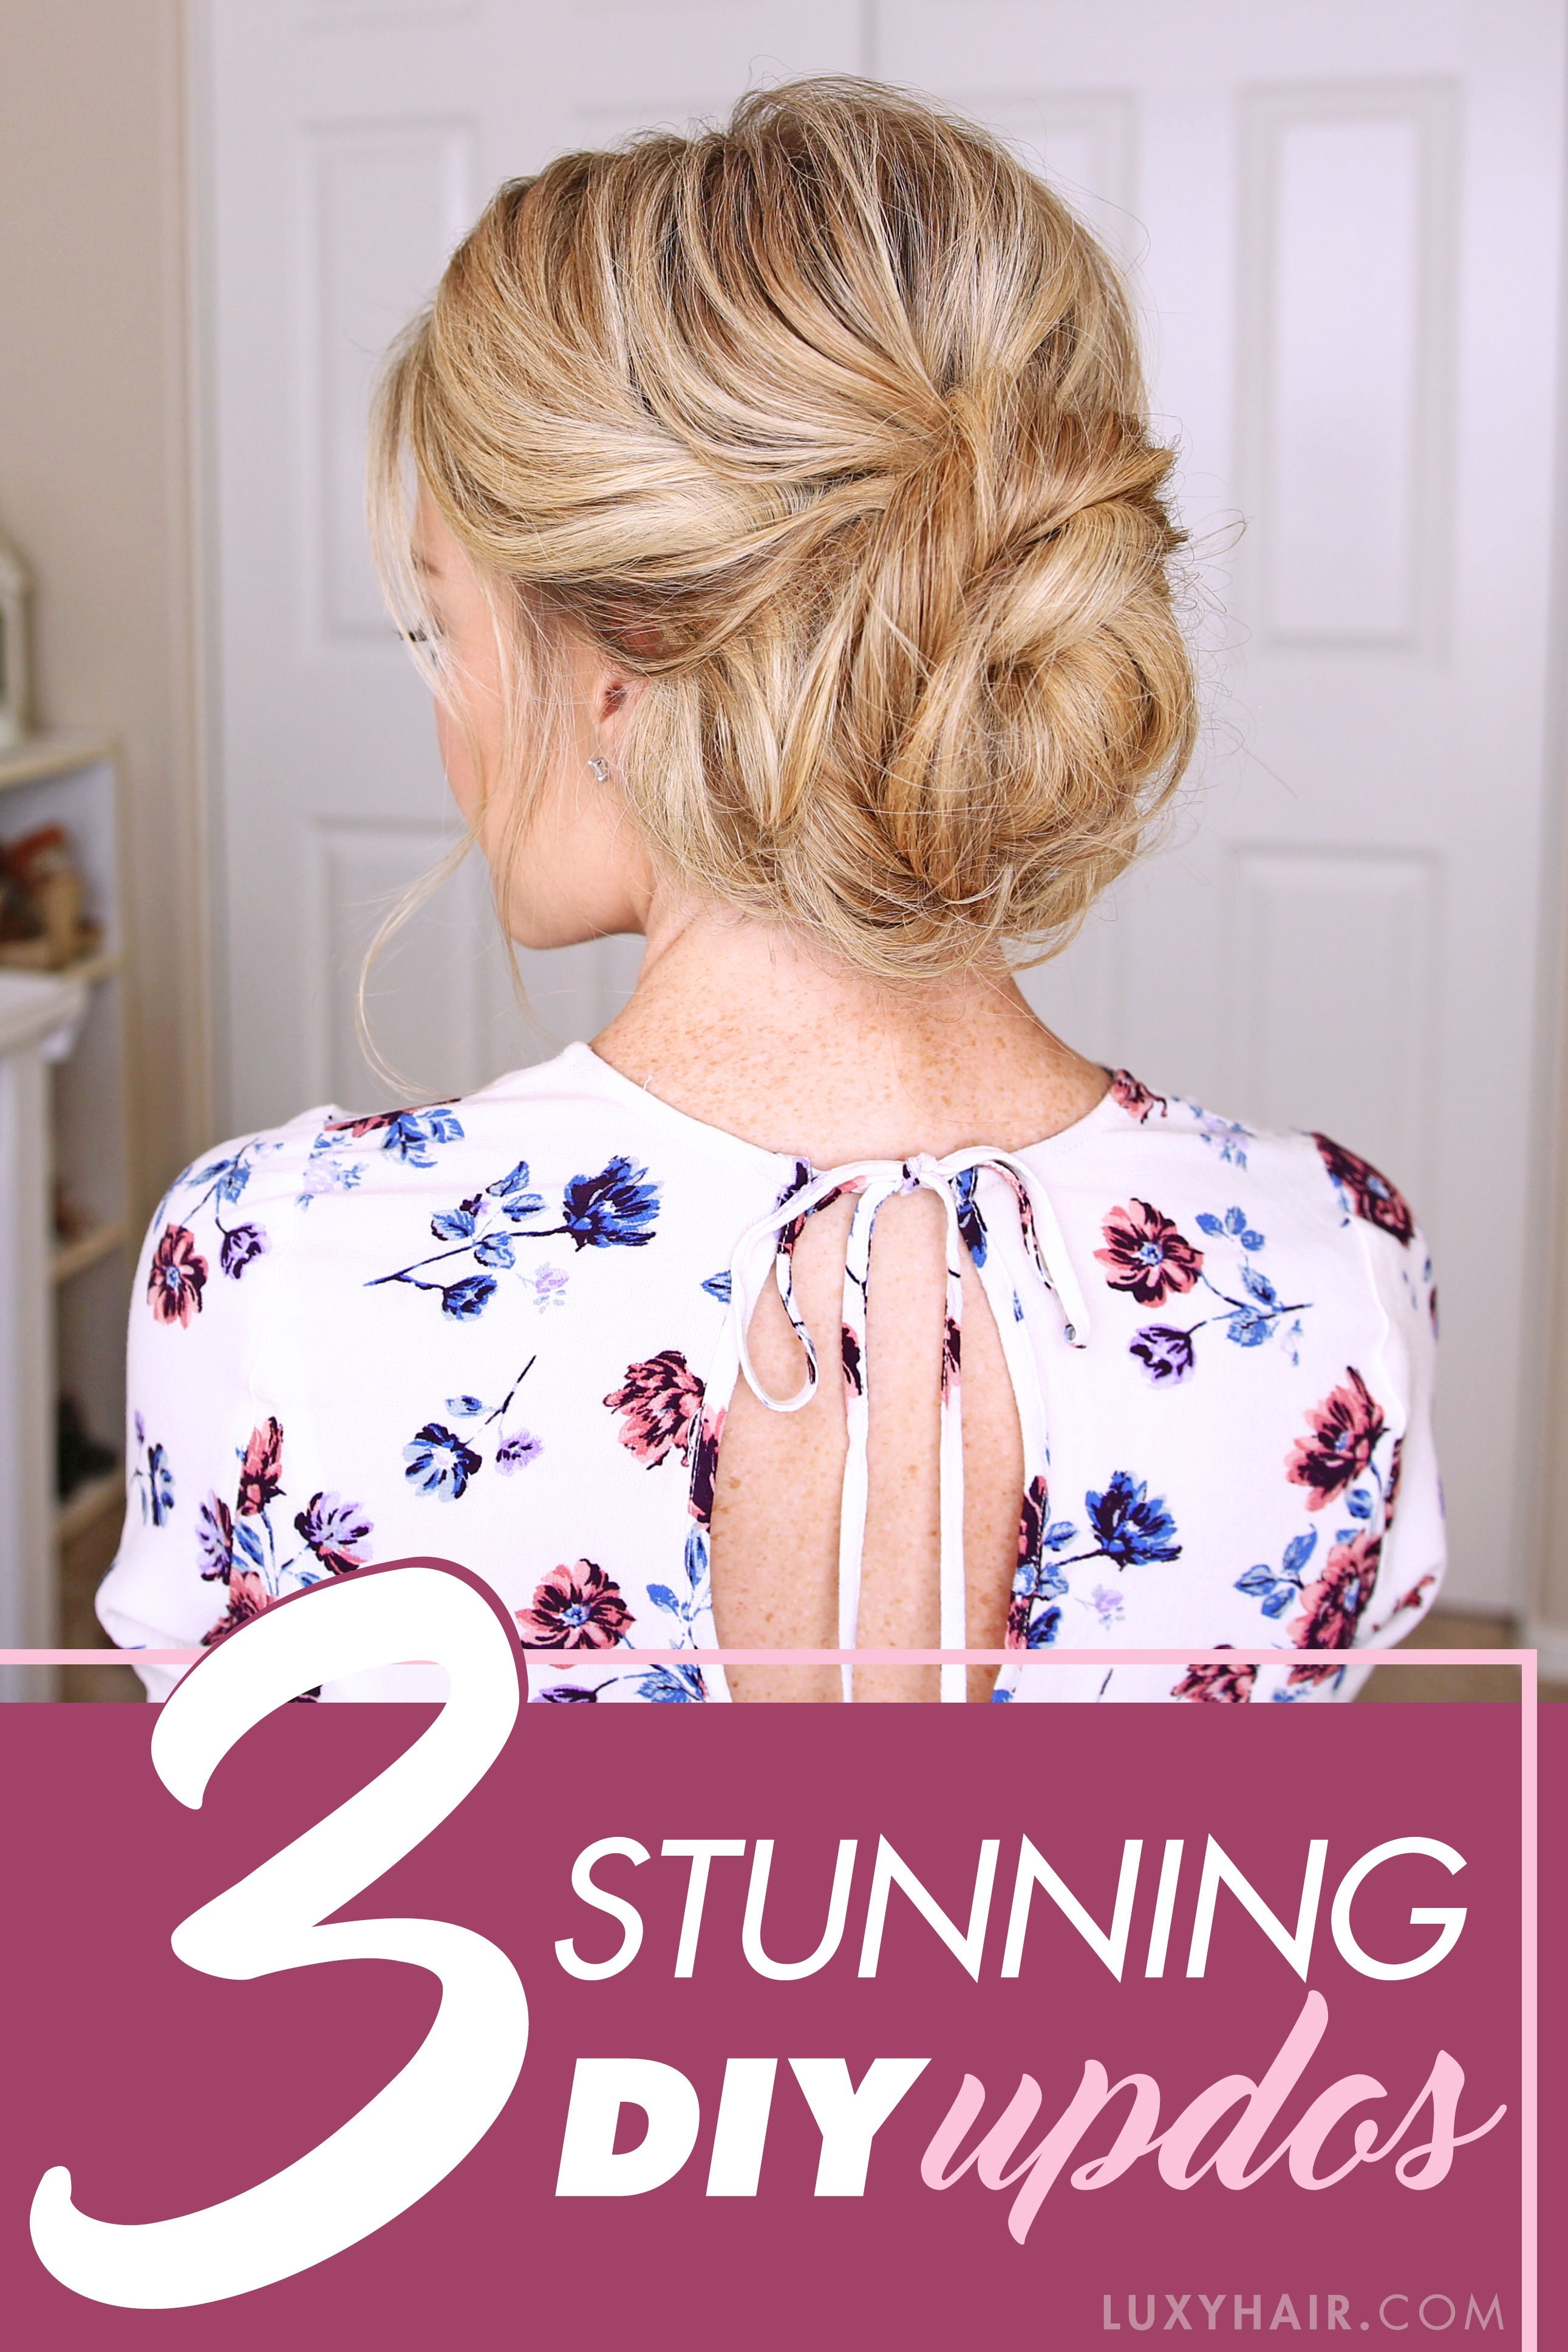 3 stunning updos that you can do yourself up dos prom and tutorials these 3 updos are gorgeous and are perfect for any special occasion wedding prom everyday hairstylesdiy solutioingenieria Image collections